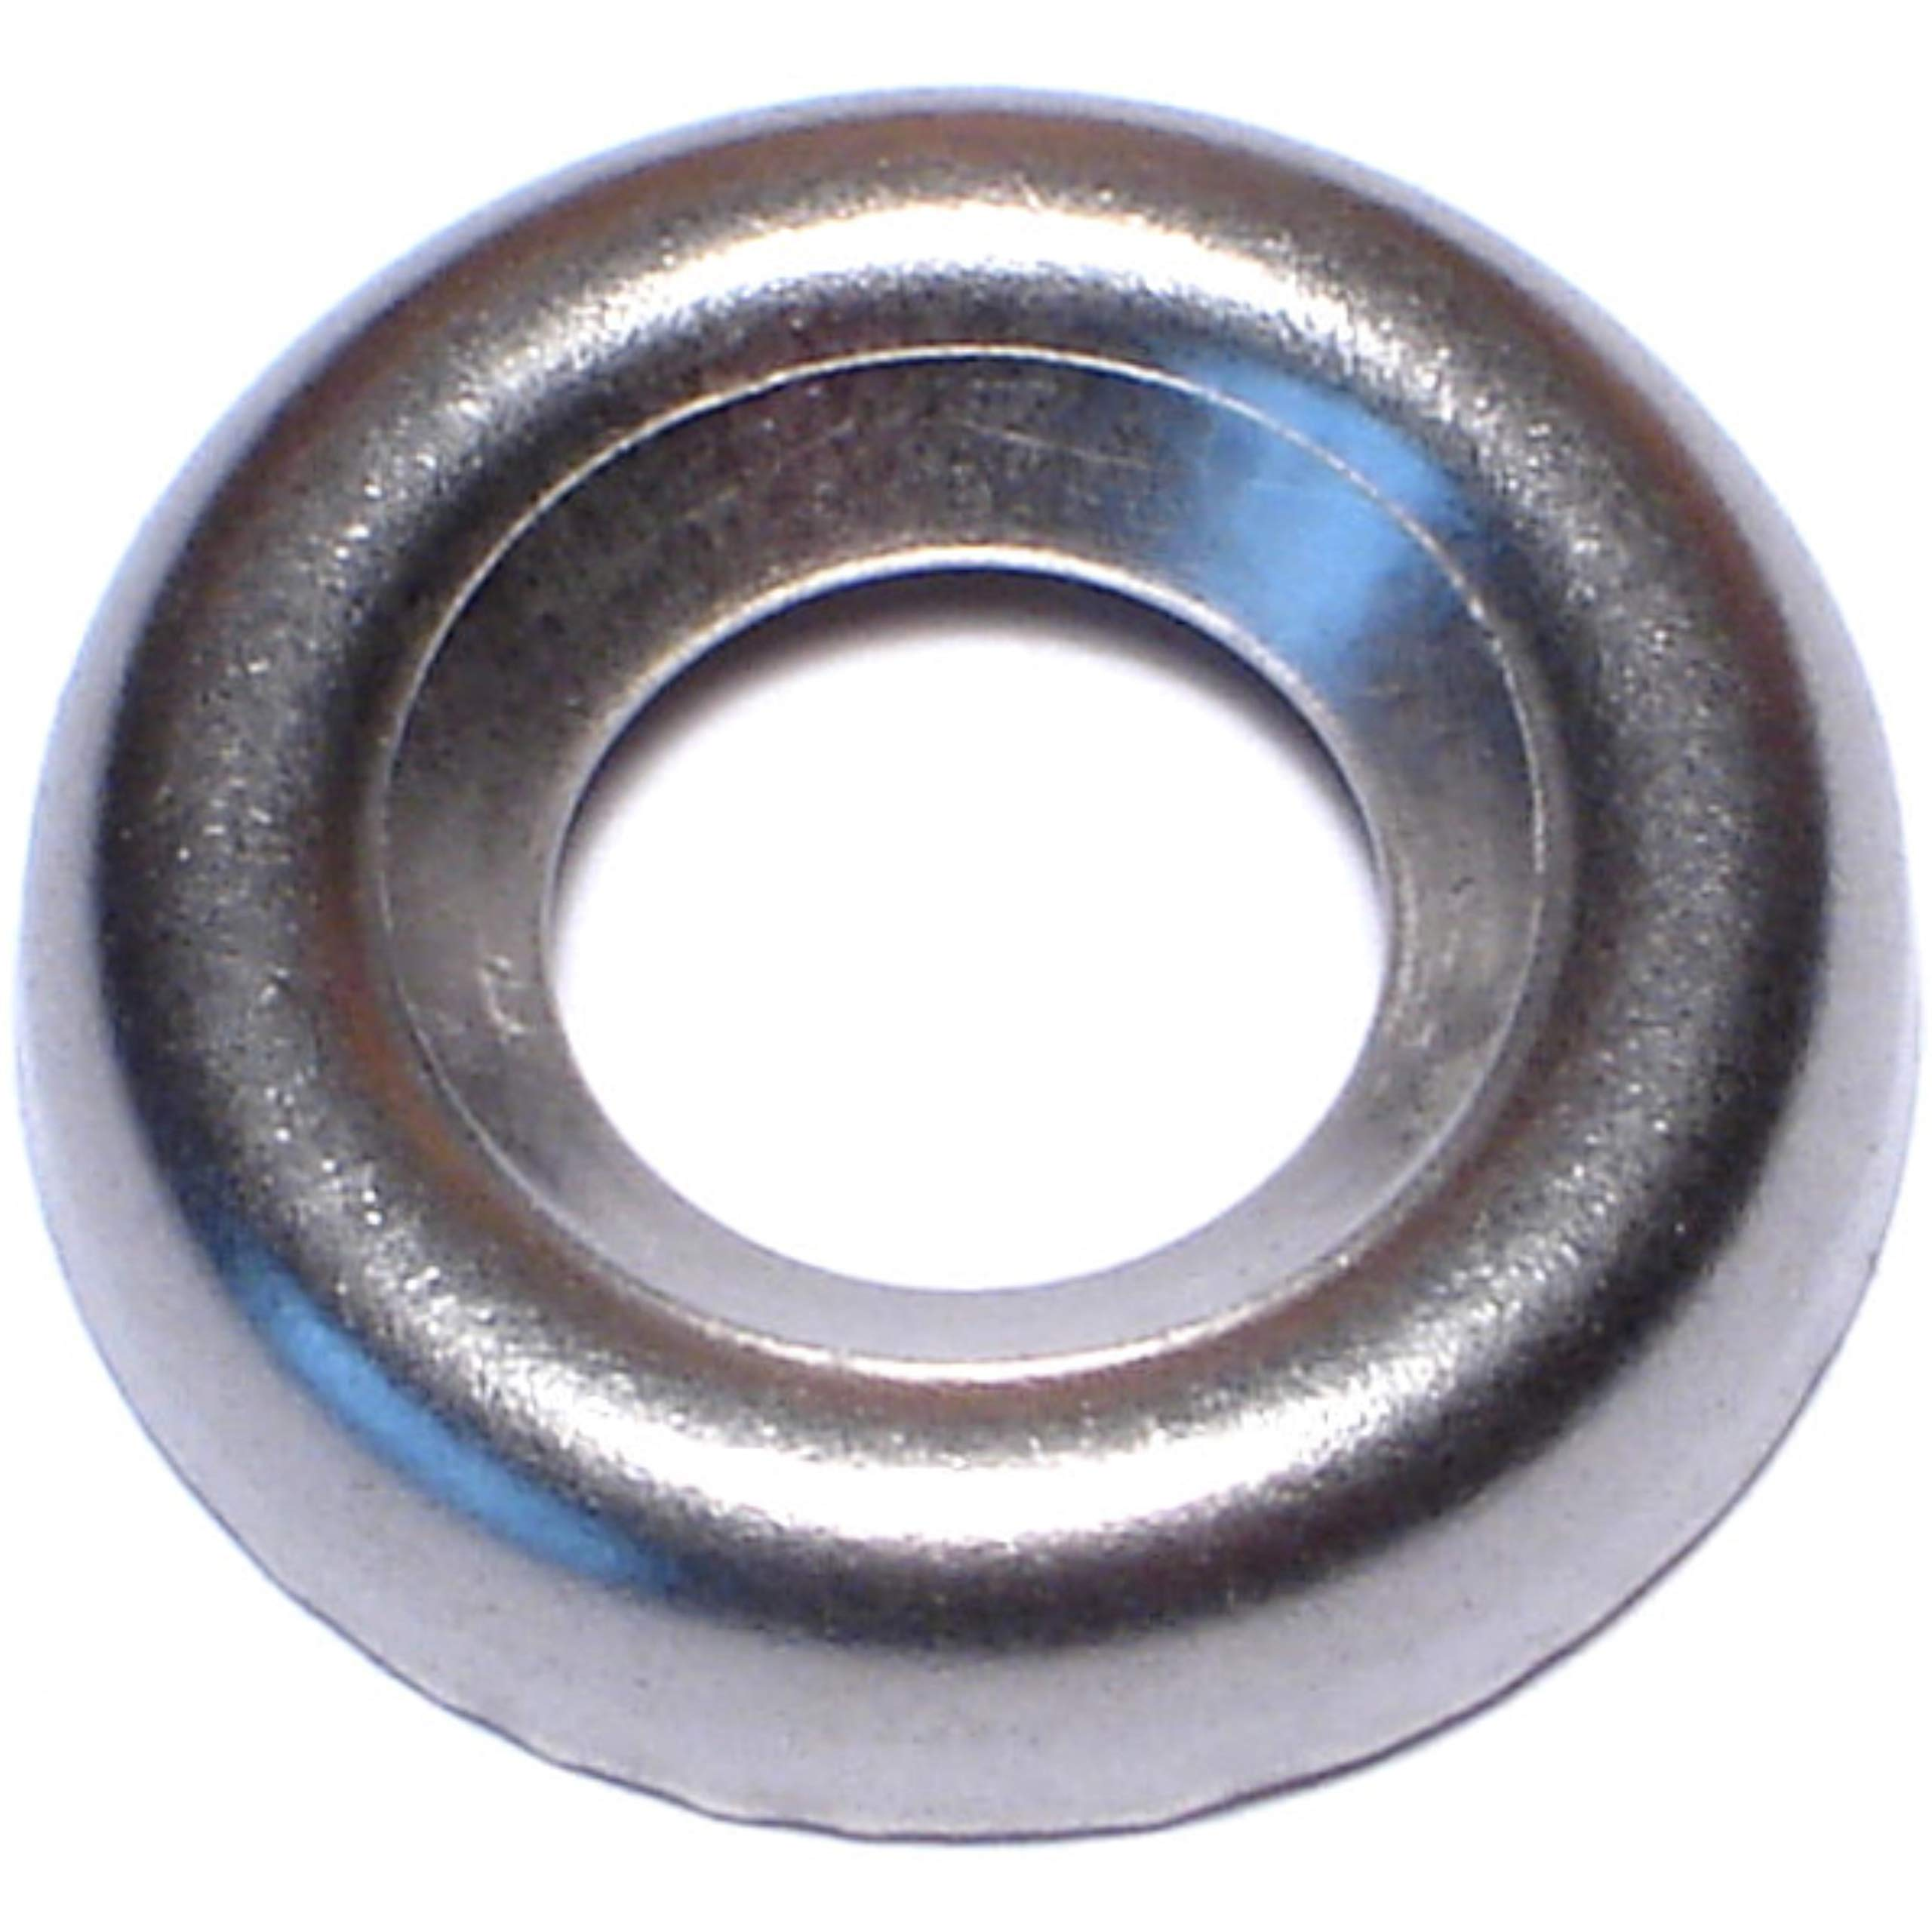 Hard-to-Find Fastener 014973181628 Finishing Washers, 14, Piece-100